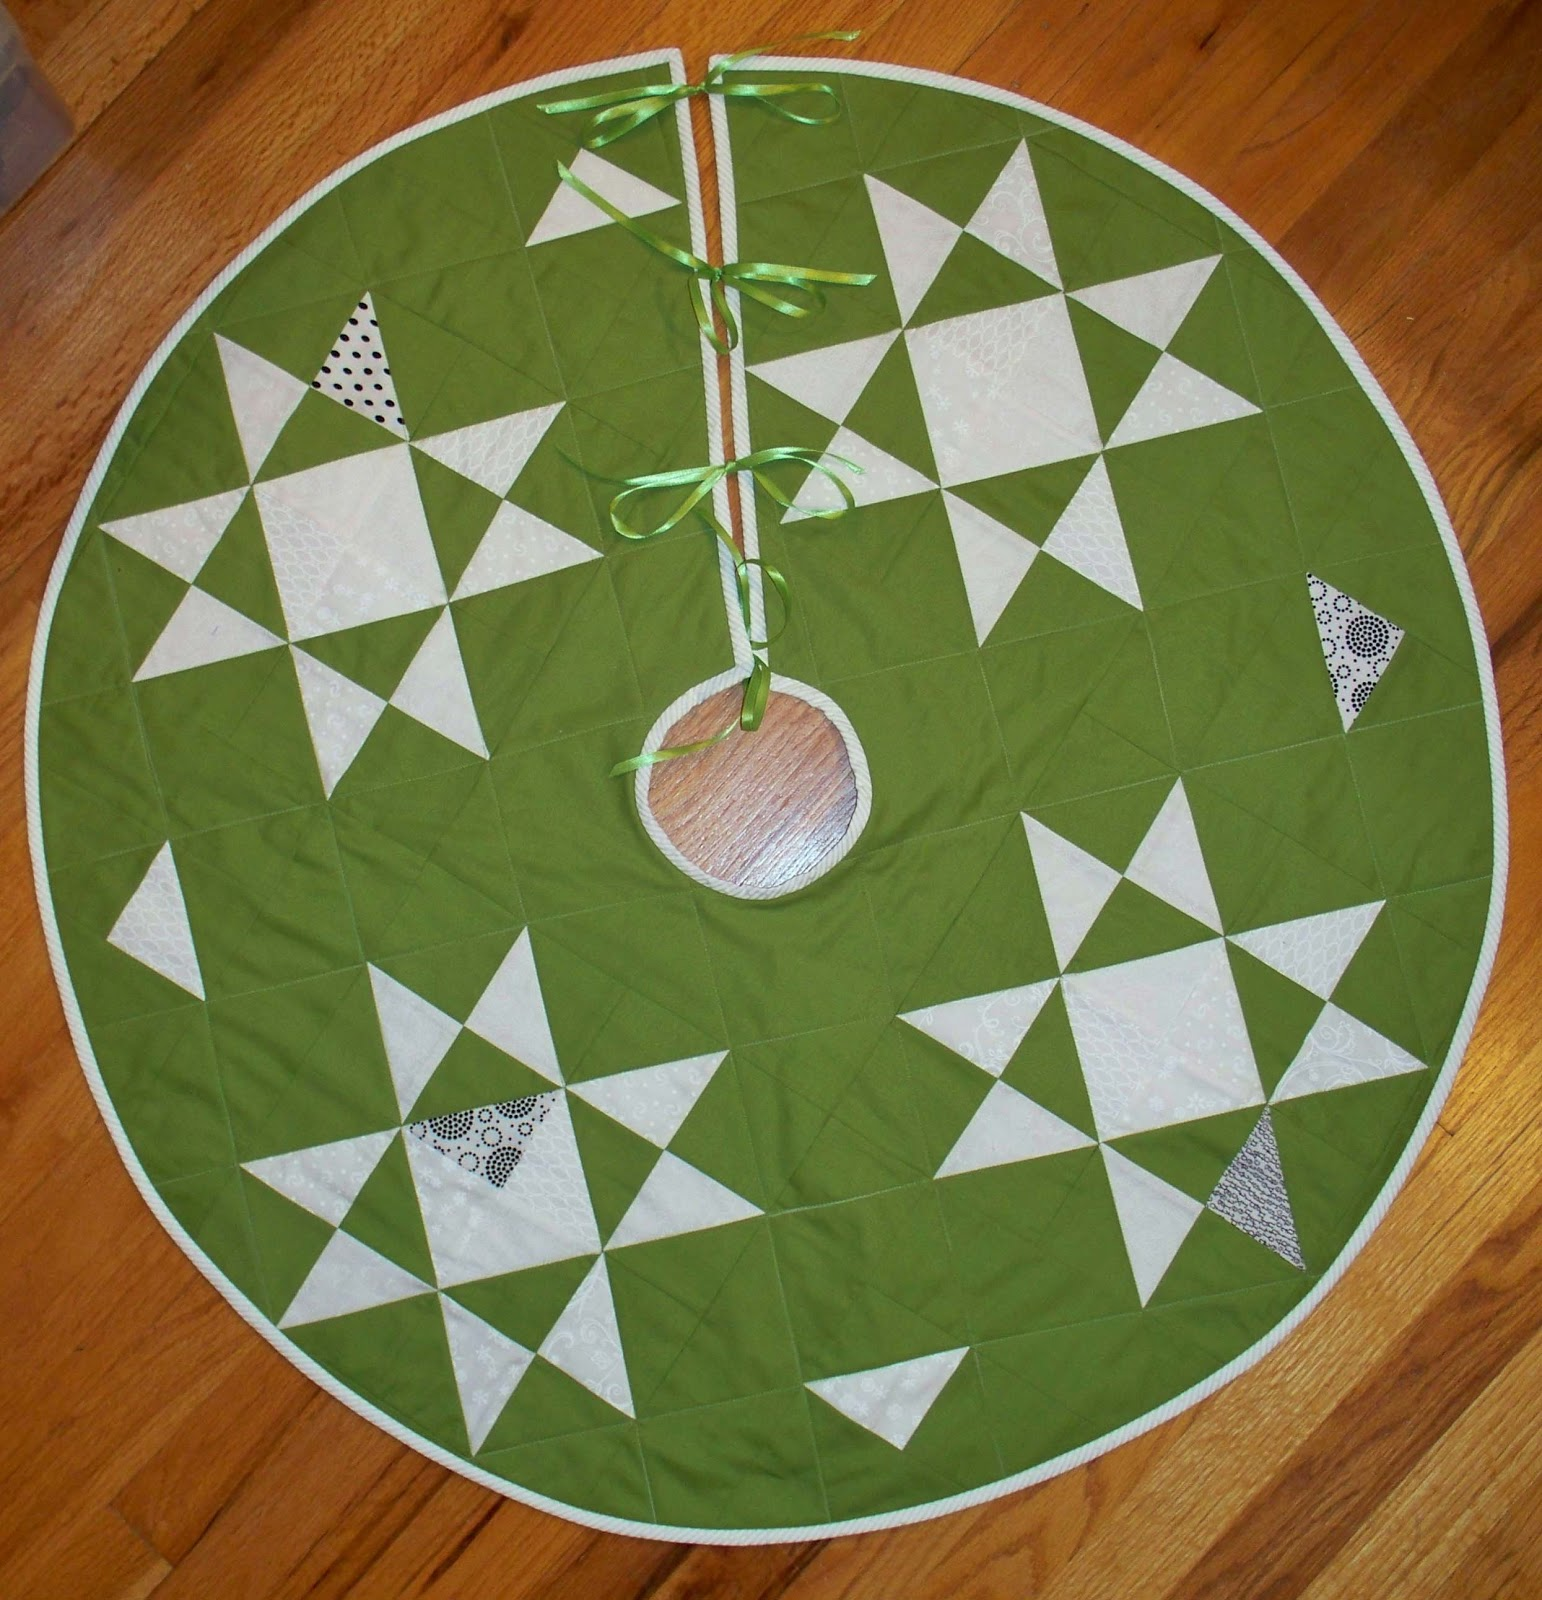 Free Quilt Patterns For Christmas Tree Skirt : Free pattern day! Christmas Tree skirts Quilt Inspiration Bloglovin